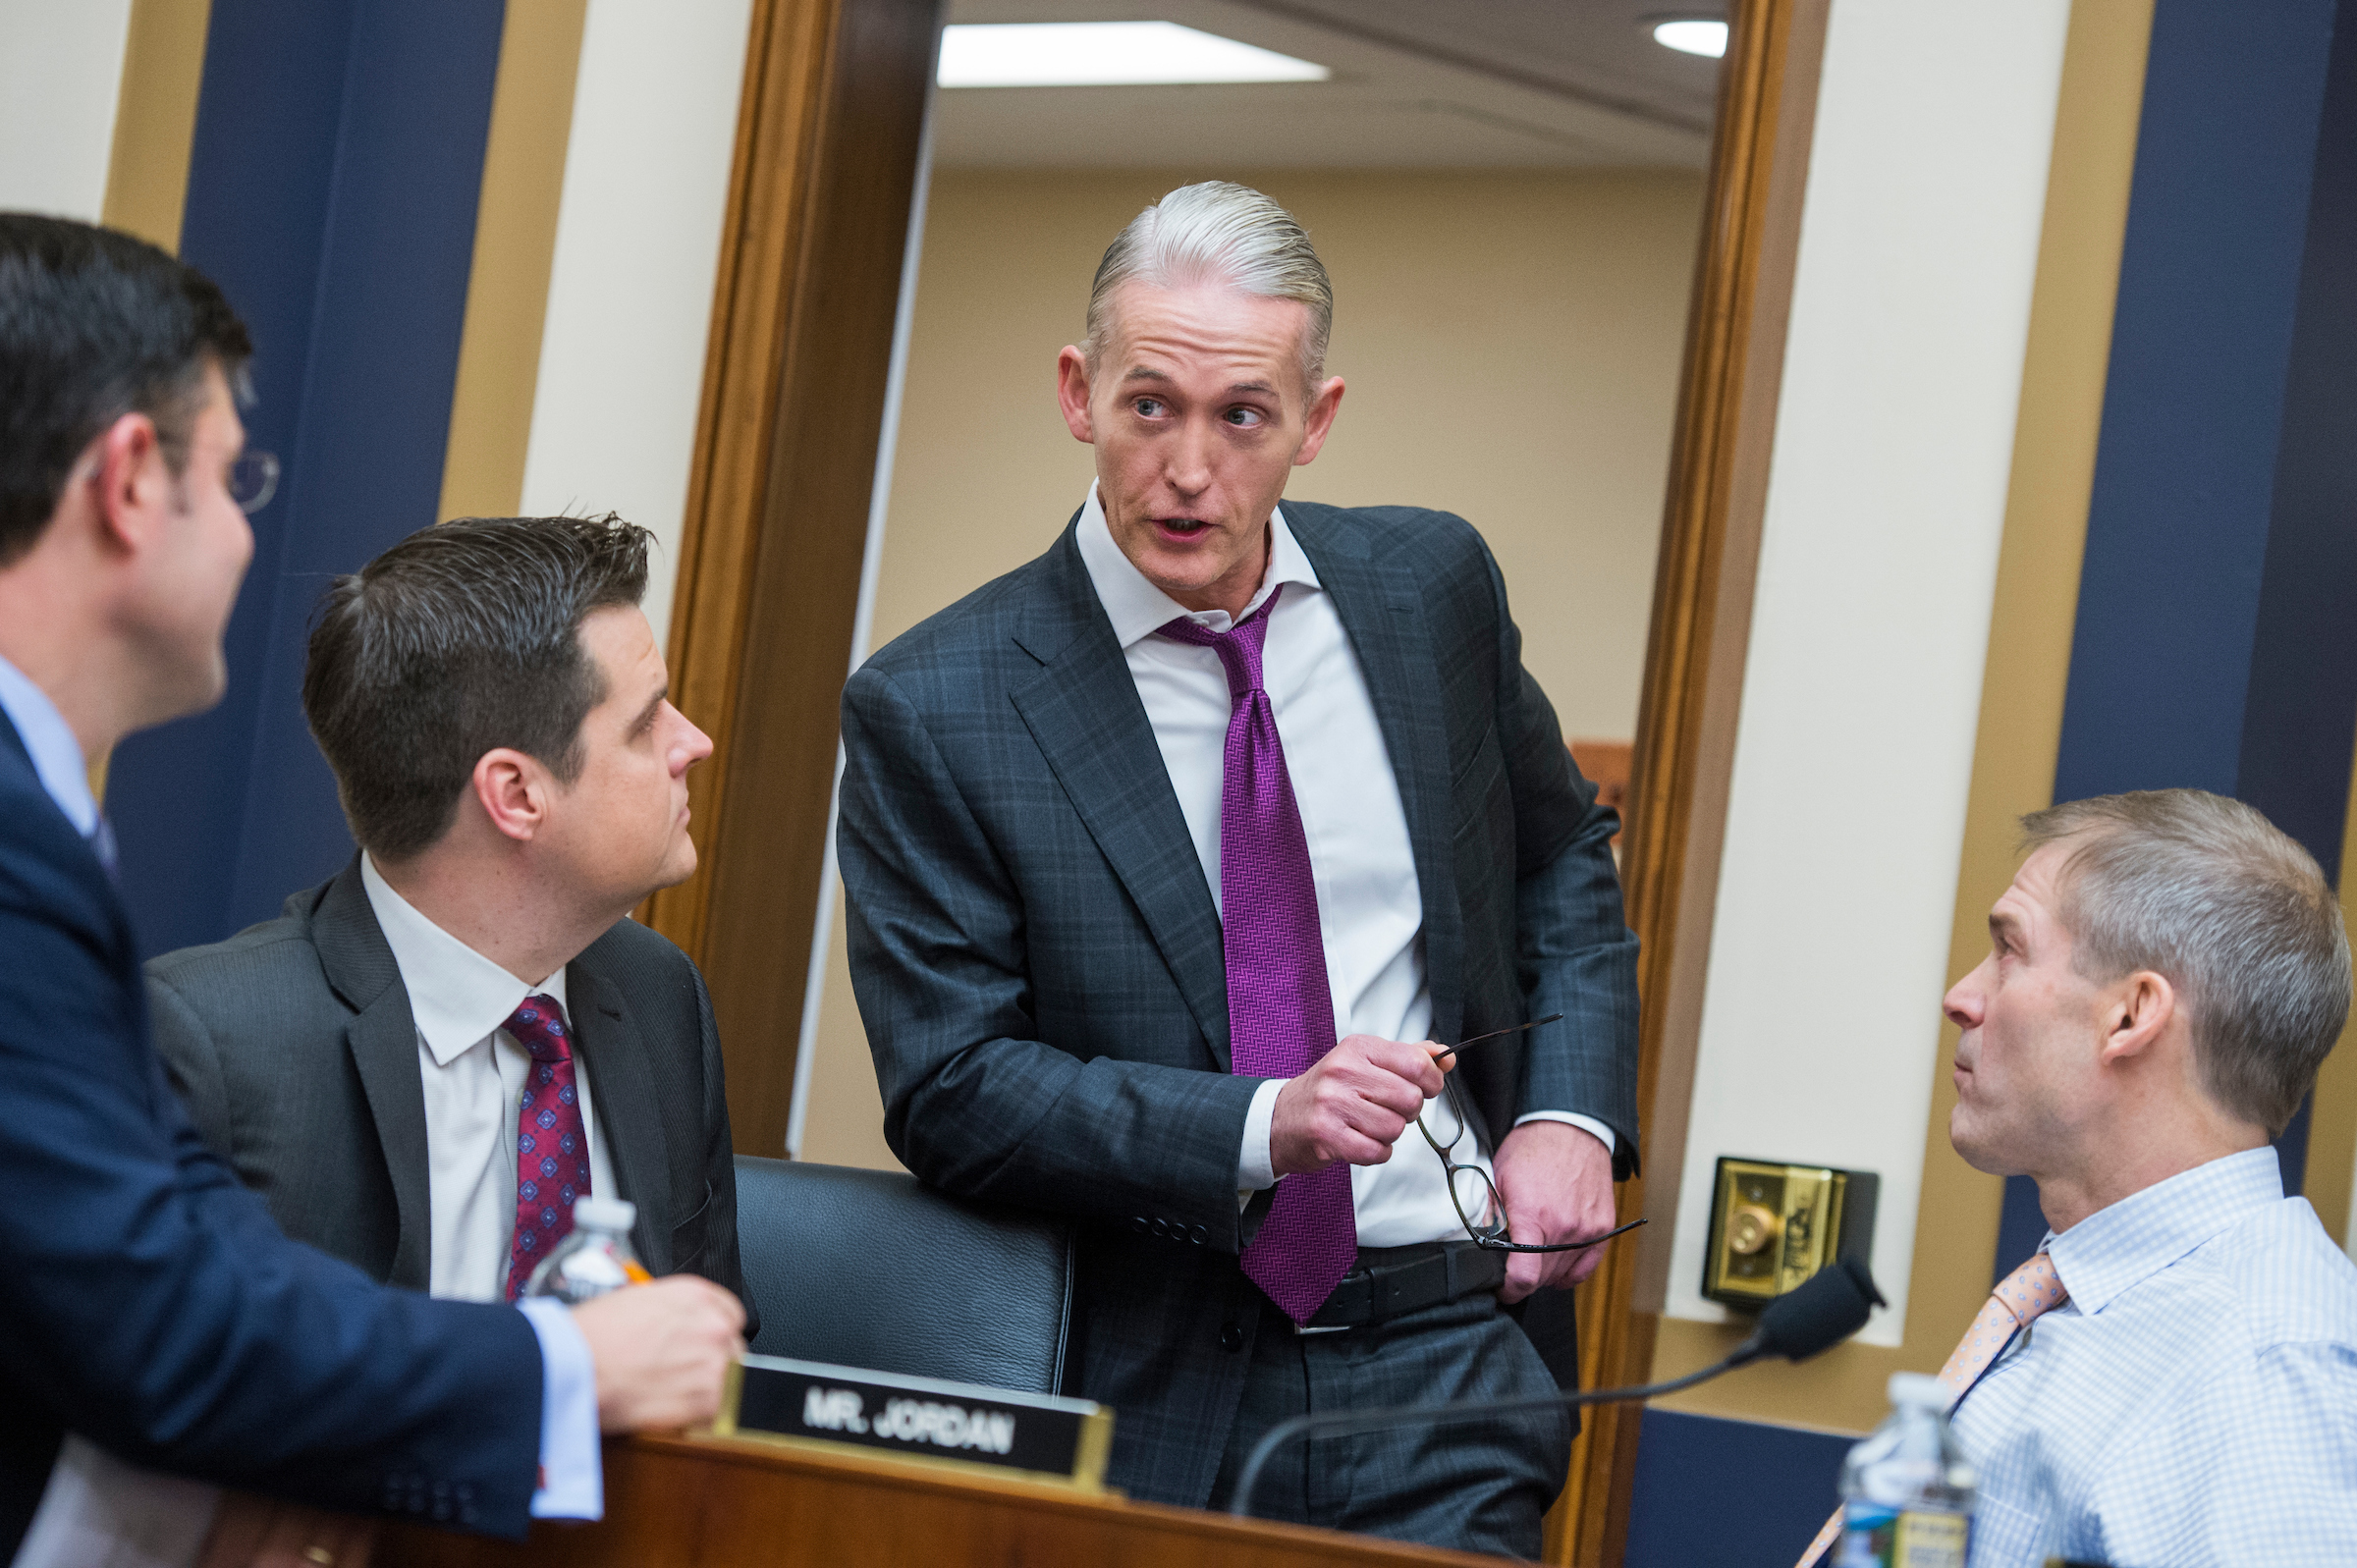 From left, Reps. Mike Johnson, R-La., Matt Gaetz, R-Fla., Trey Gowdy, R-S.C., and Jim Jordan, R-Ohio, attend a House Judiciary Committee hearing in Rayburn Building on the Justice Department's investigation of Russia's interference in the 2016 election featuring testimony by Deputy Attorney General Rod Rosenstein on December 13, 2017. (Photo By Tom Williams/CQ Roll Call)